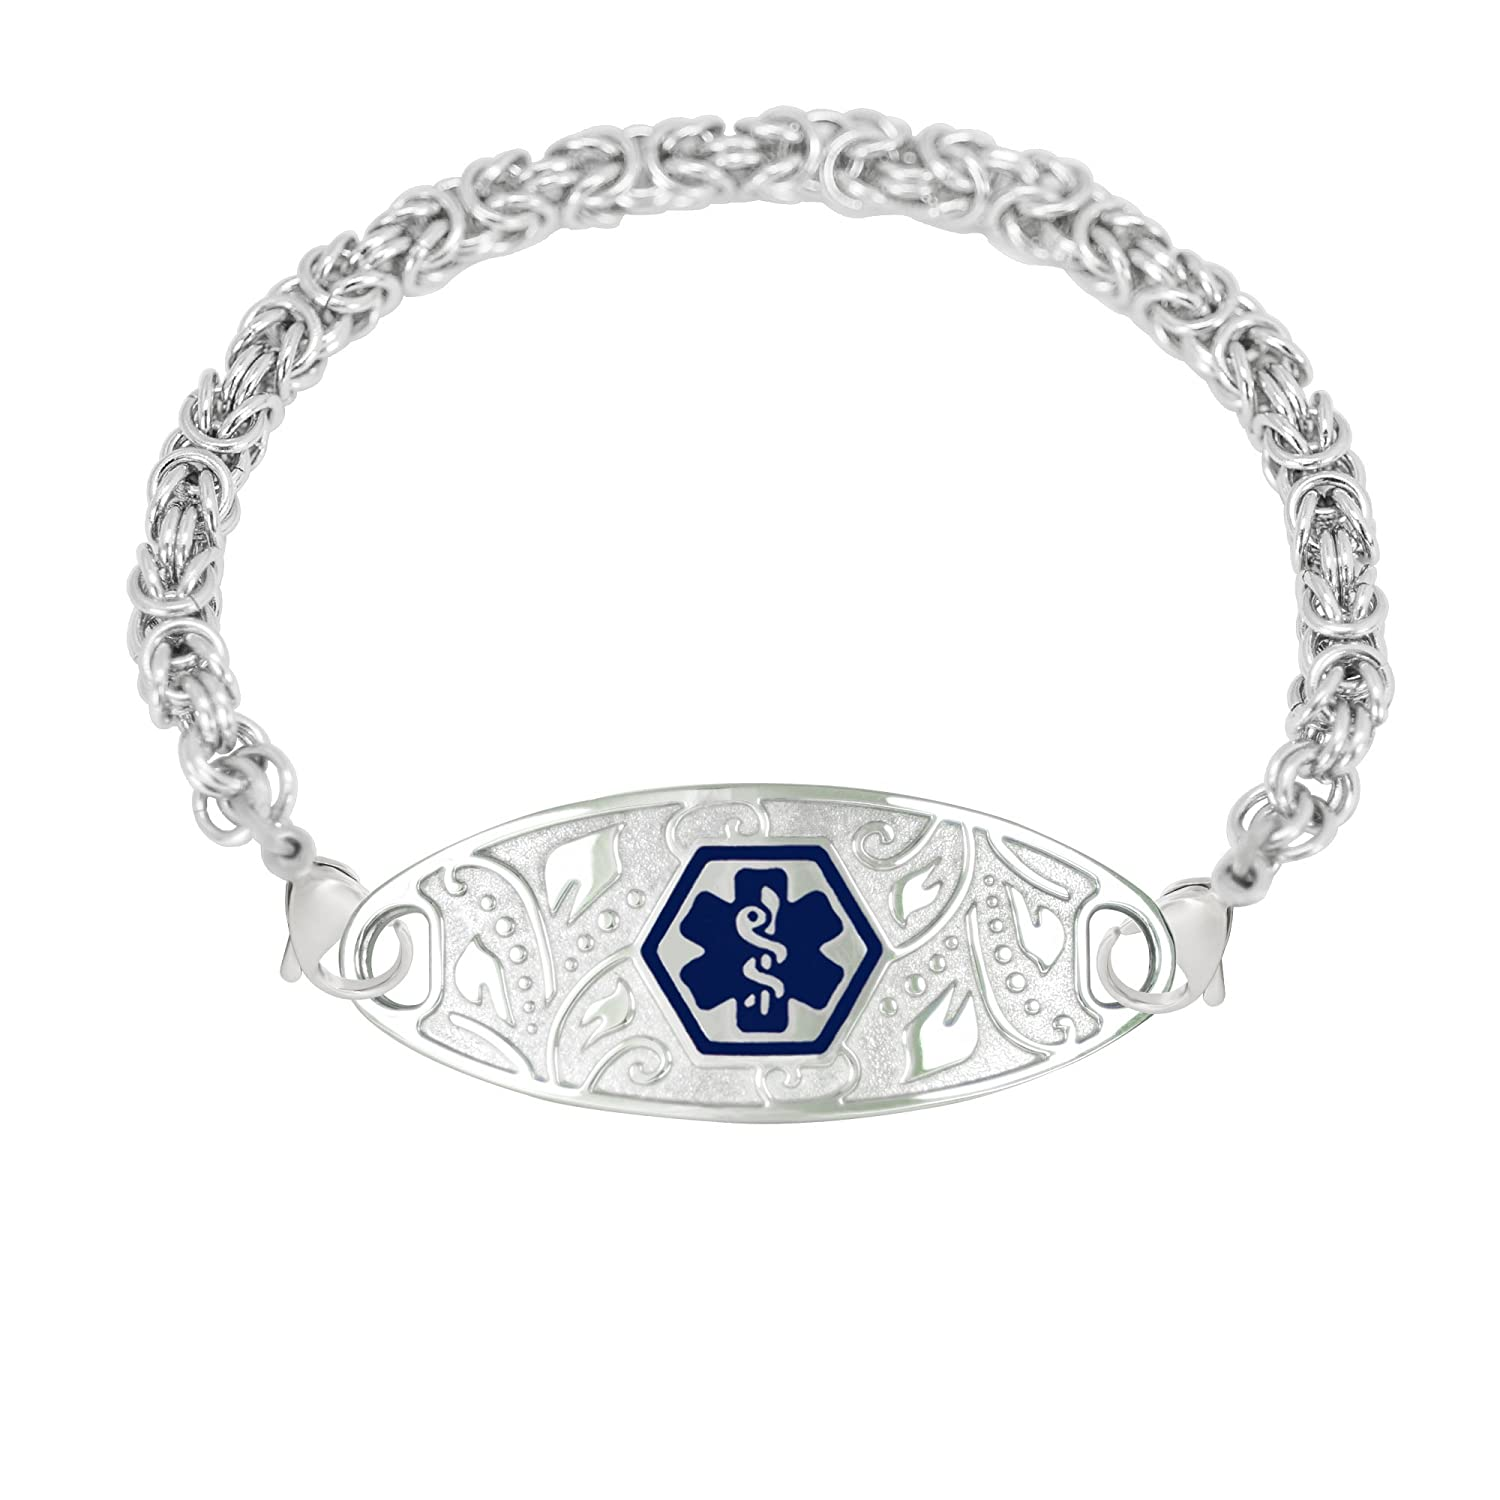 Divoti Custom Engraved 316L Lovely Filigree Medical Alert Bracelet for Women w/Stainless Handmade Byzantine Chain -Deep Blue Divoti Inc. 13200DBU-55